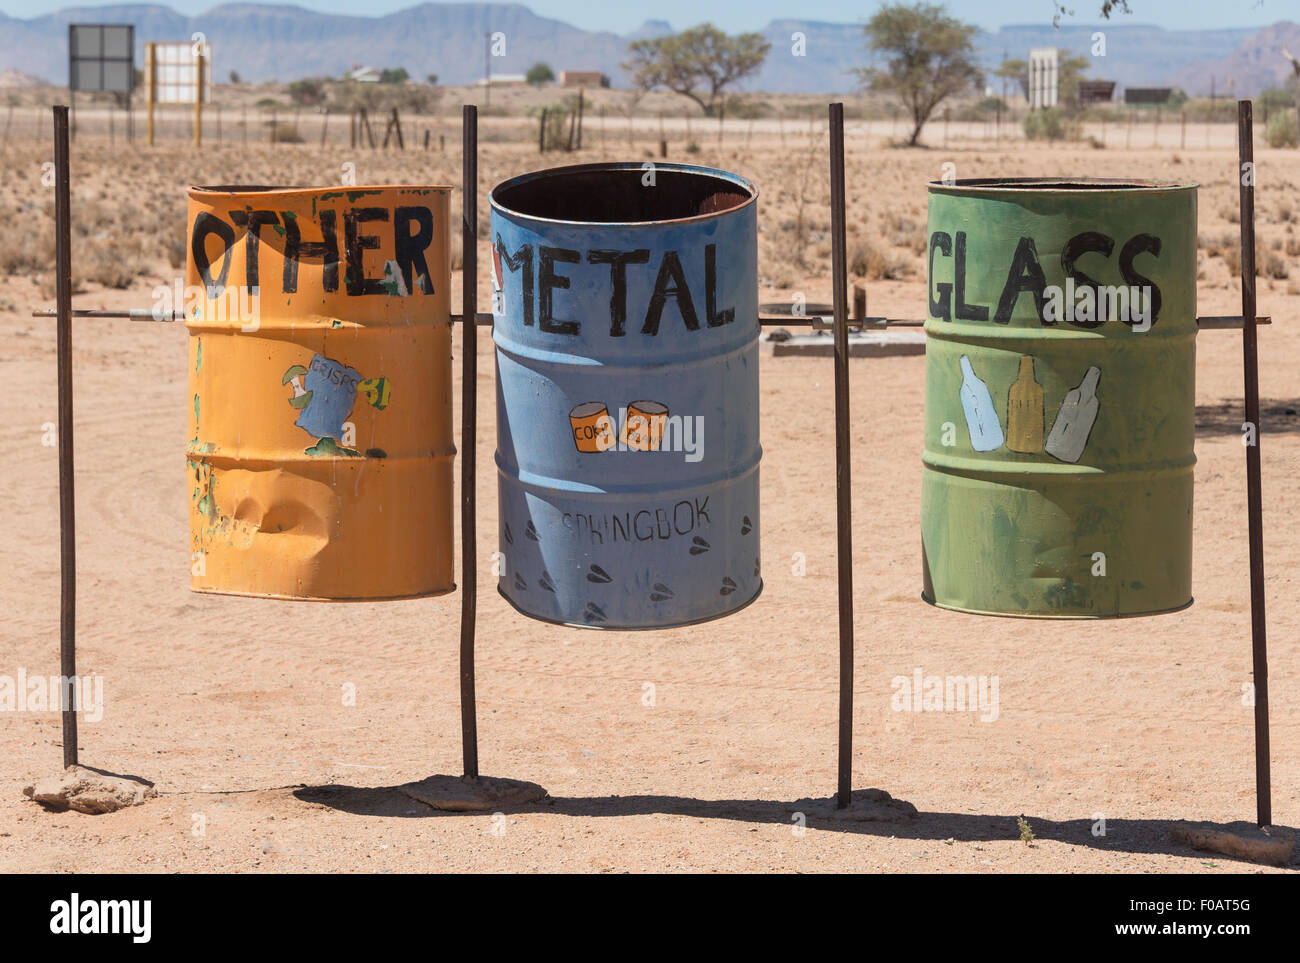 Recycling drums at Sesriem Canyon, Namib-Naukluft National Park, Sossusviei, Namib Desert, Hardap Region, Republic - Stock Image